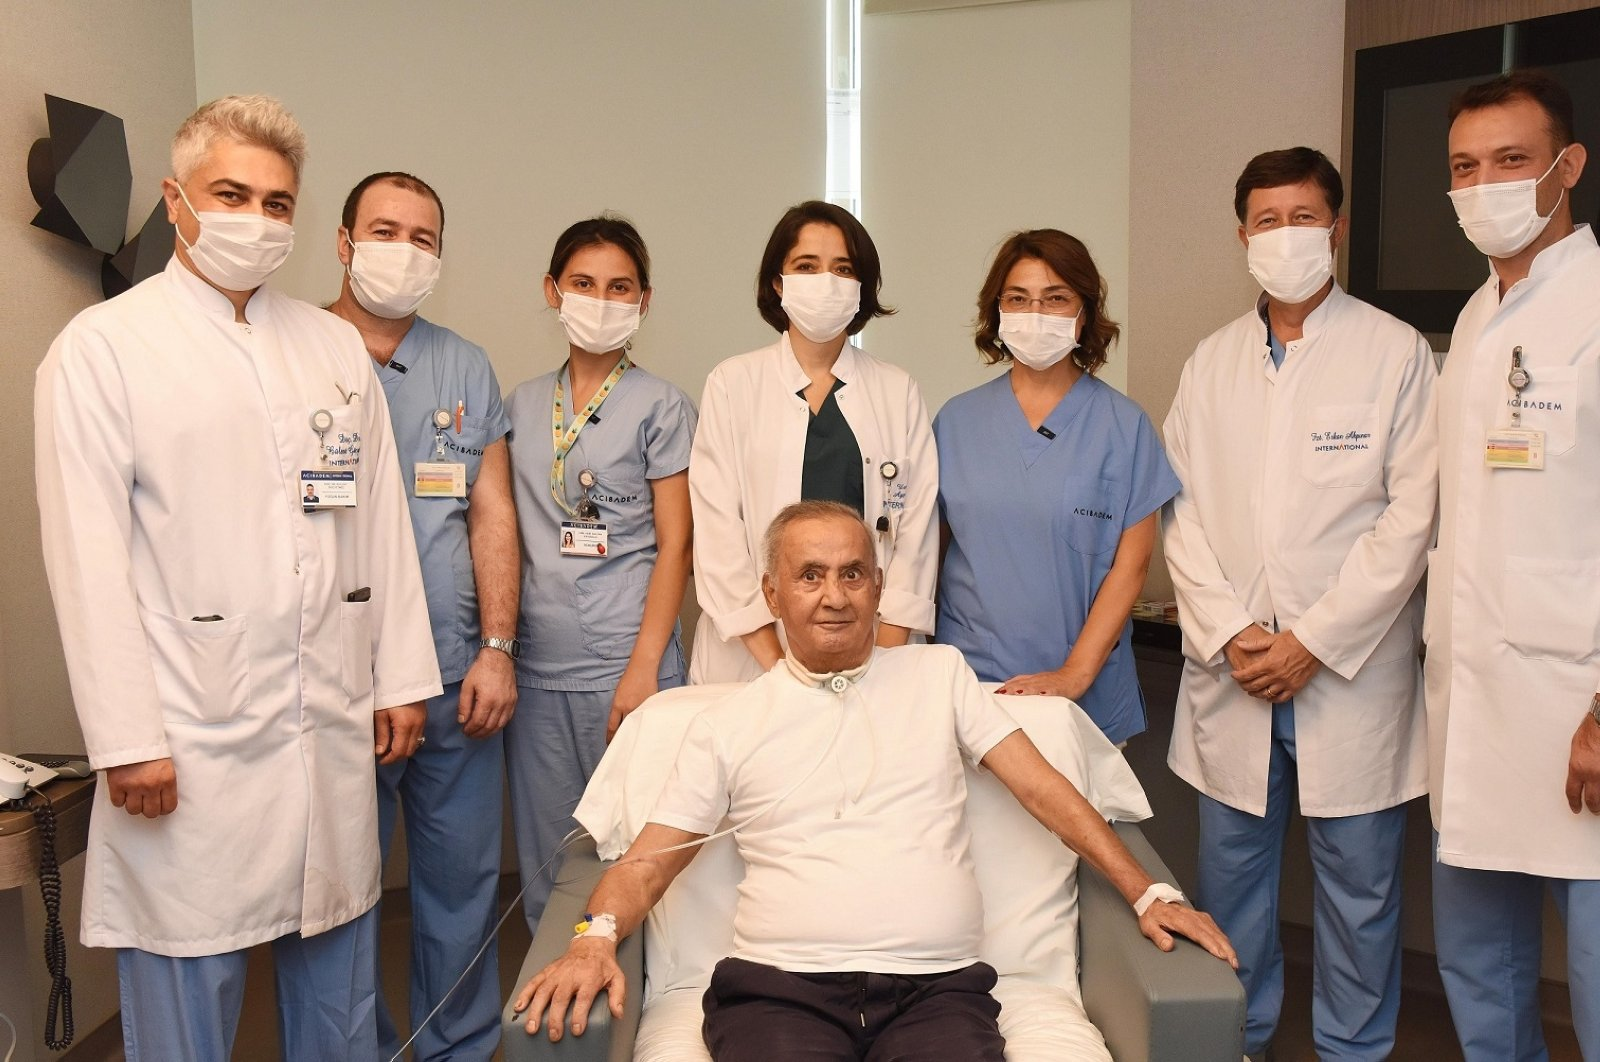 Oğuz Peker (C) poses with doctors and nurses who helped him recover from COVID-19, in Istanbul, Turkey, Sept. 17, 2020. (DHA Photo)